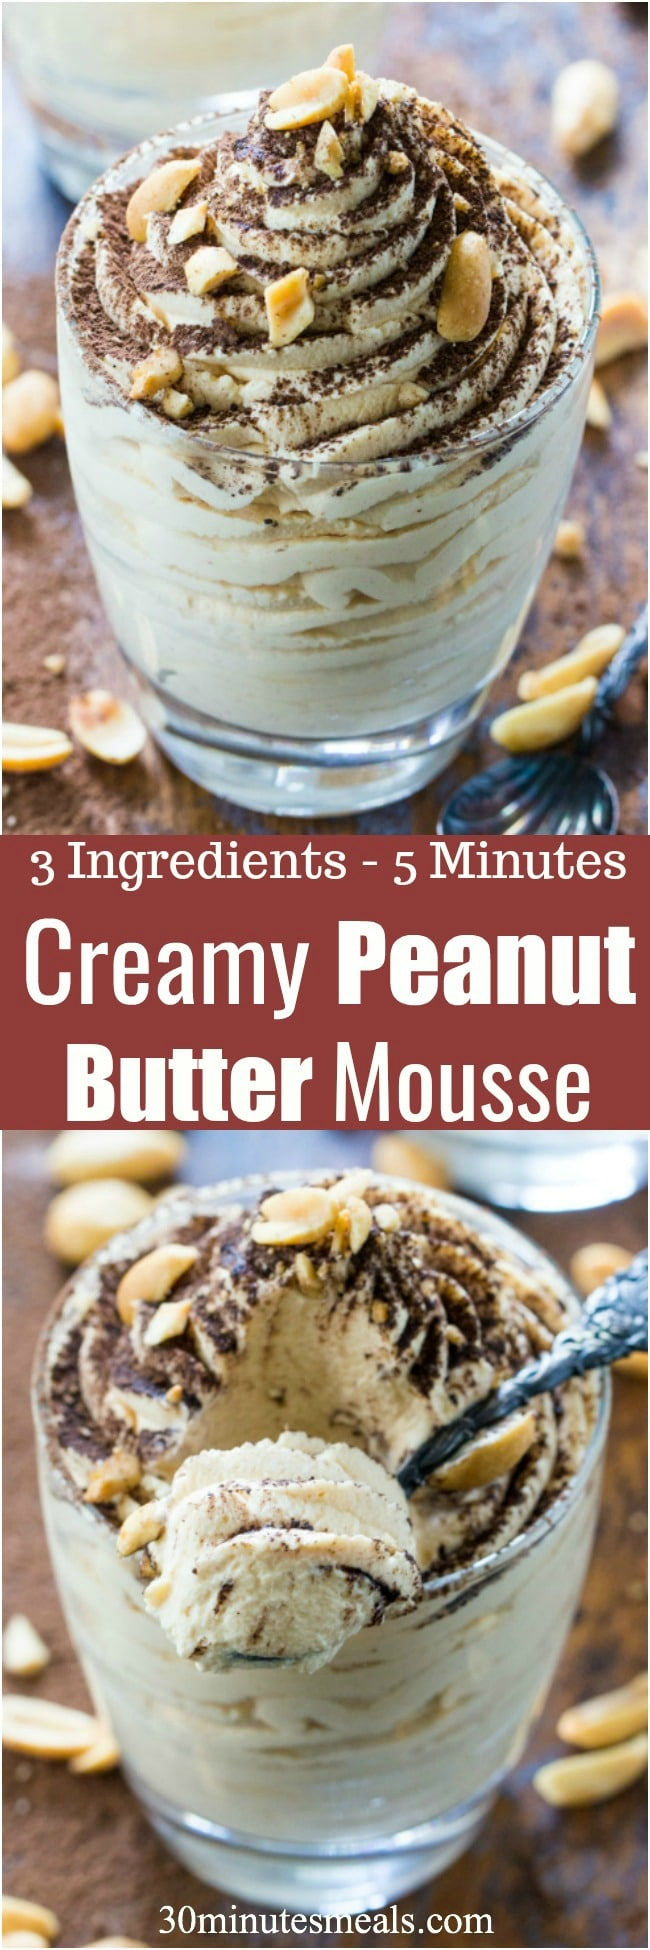 Easy Peanut Butter Mousse is made with just 3 ingredients in less than 5 minutes. Perfect to tame a quick peanut butter craving!